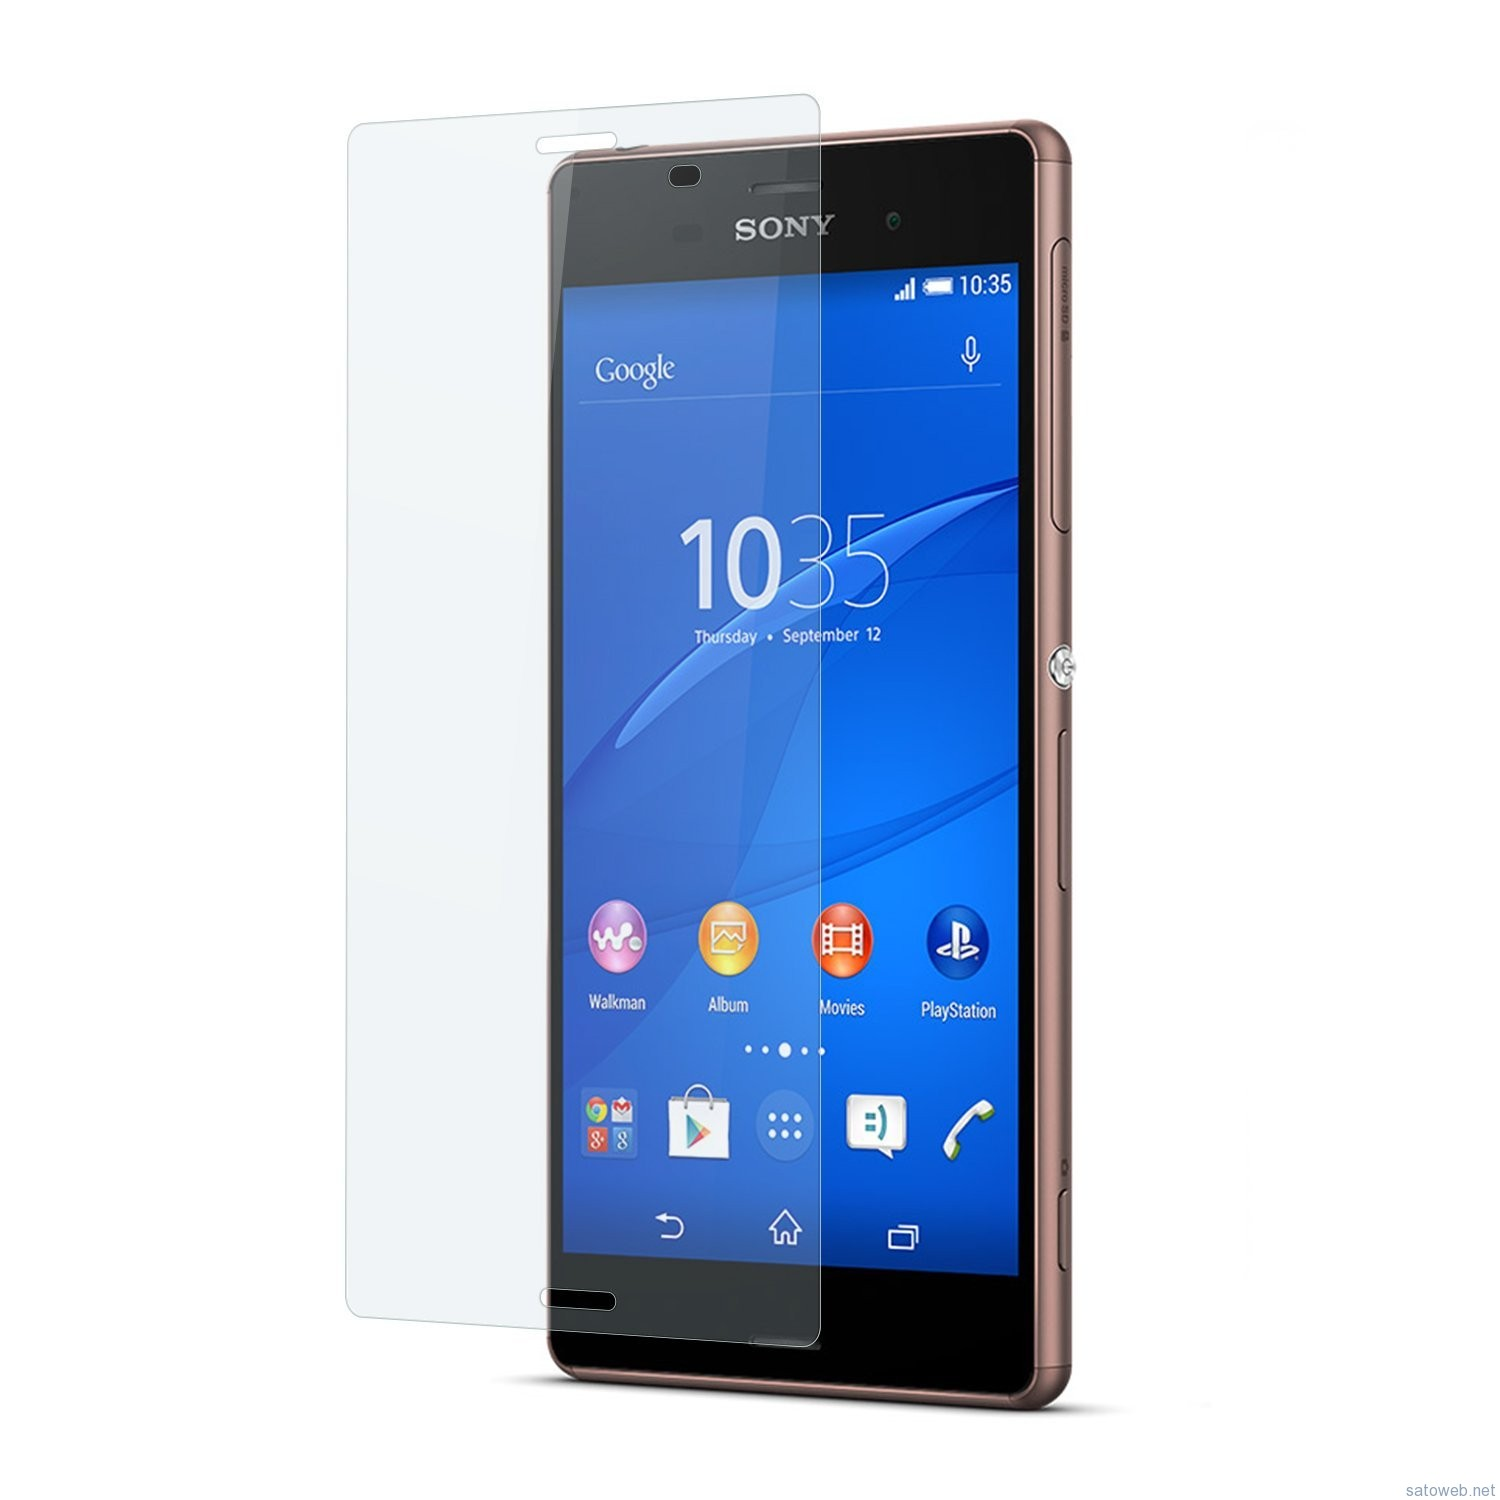 Aukey XperiaZ3向けガラスフィルムがタイムセール特価!